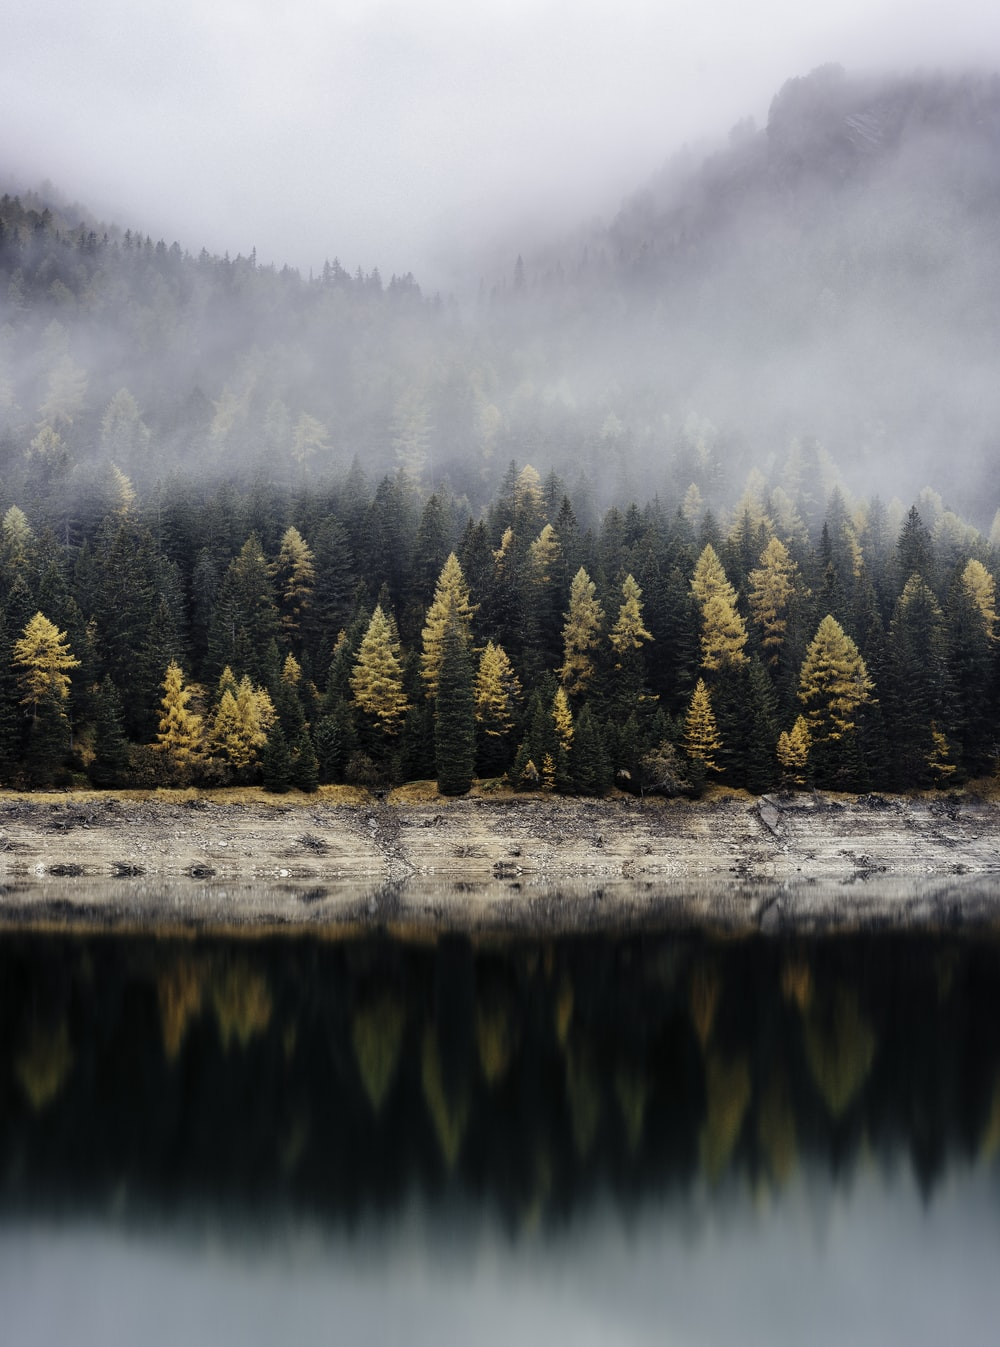 trees reflecting on body of water